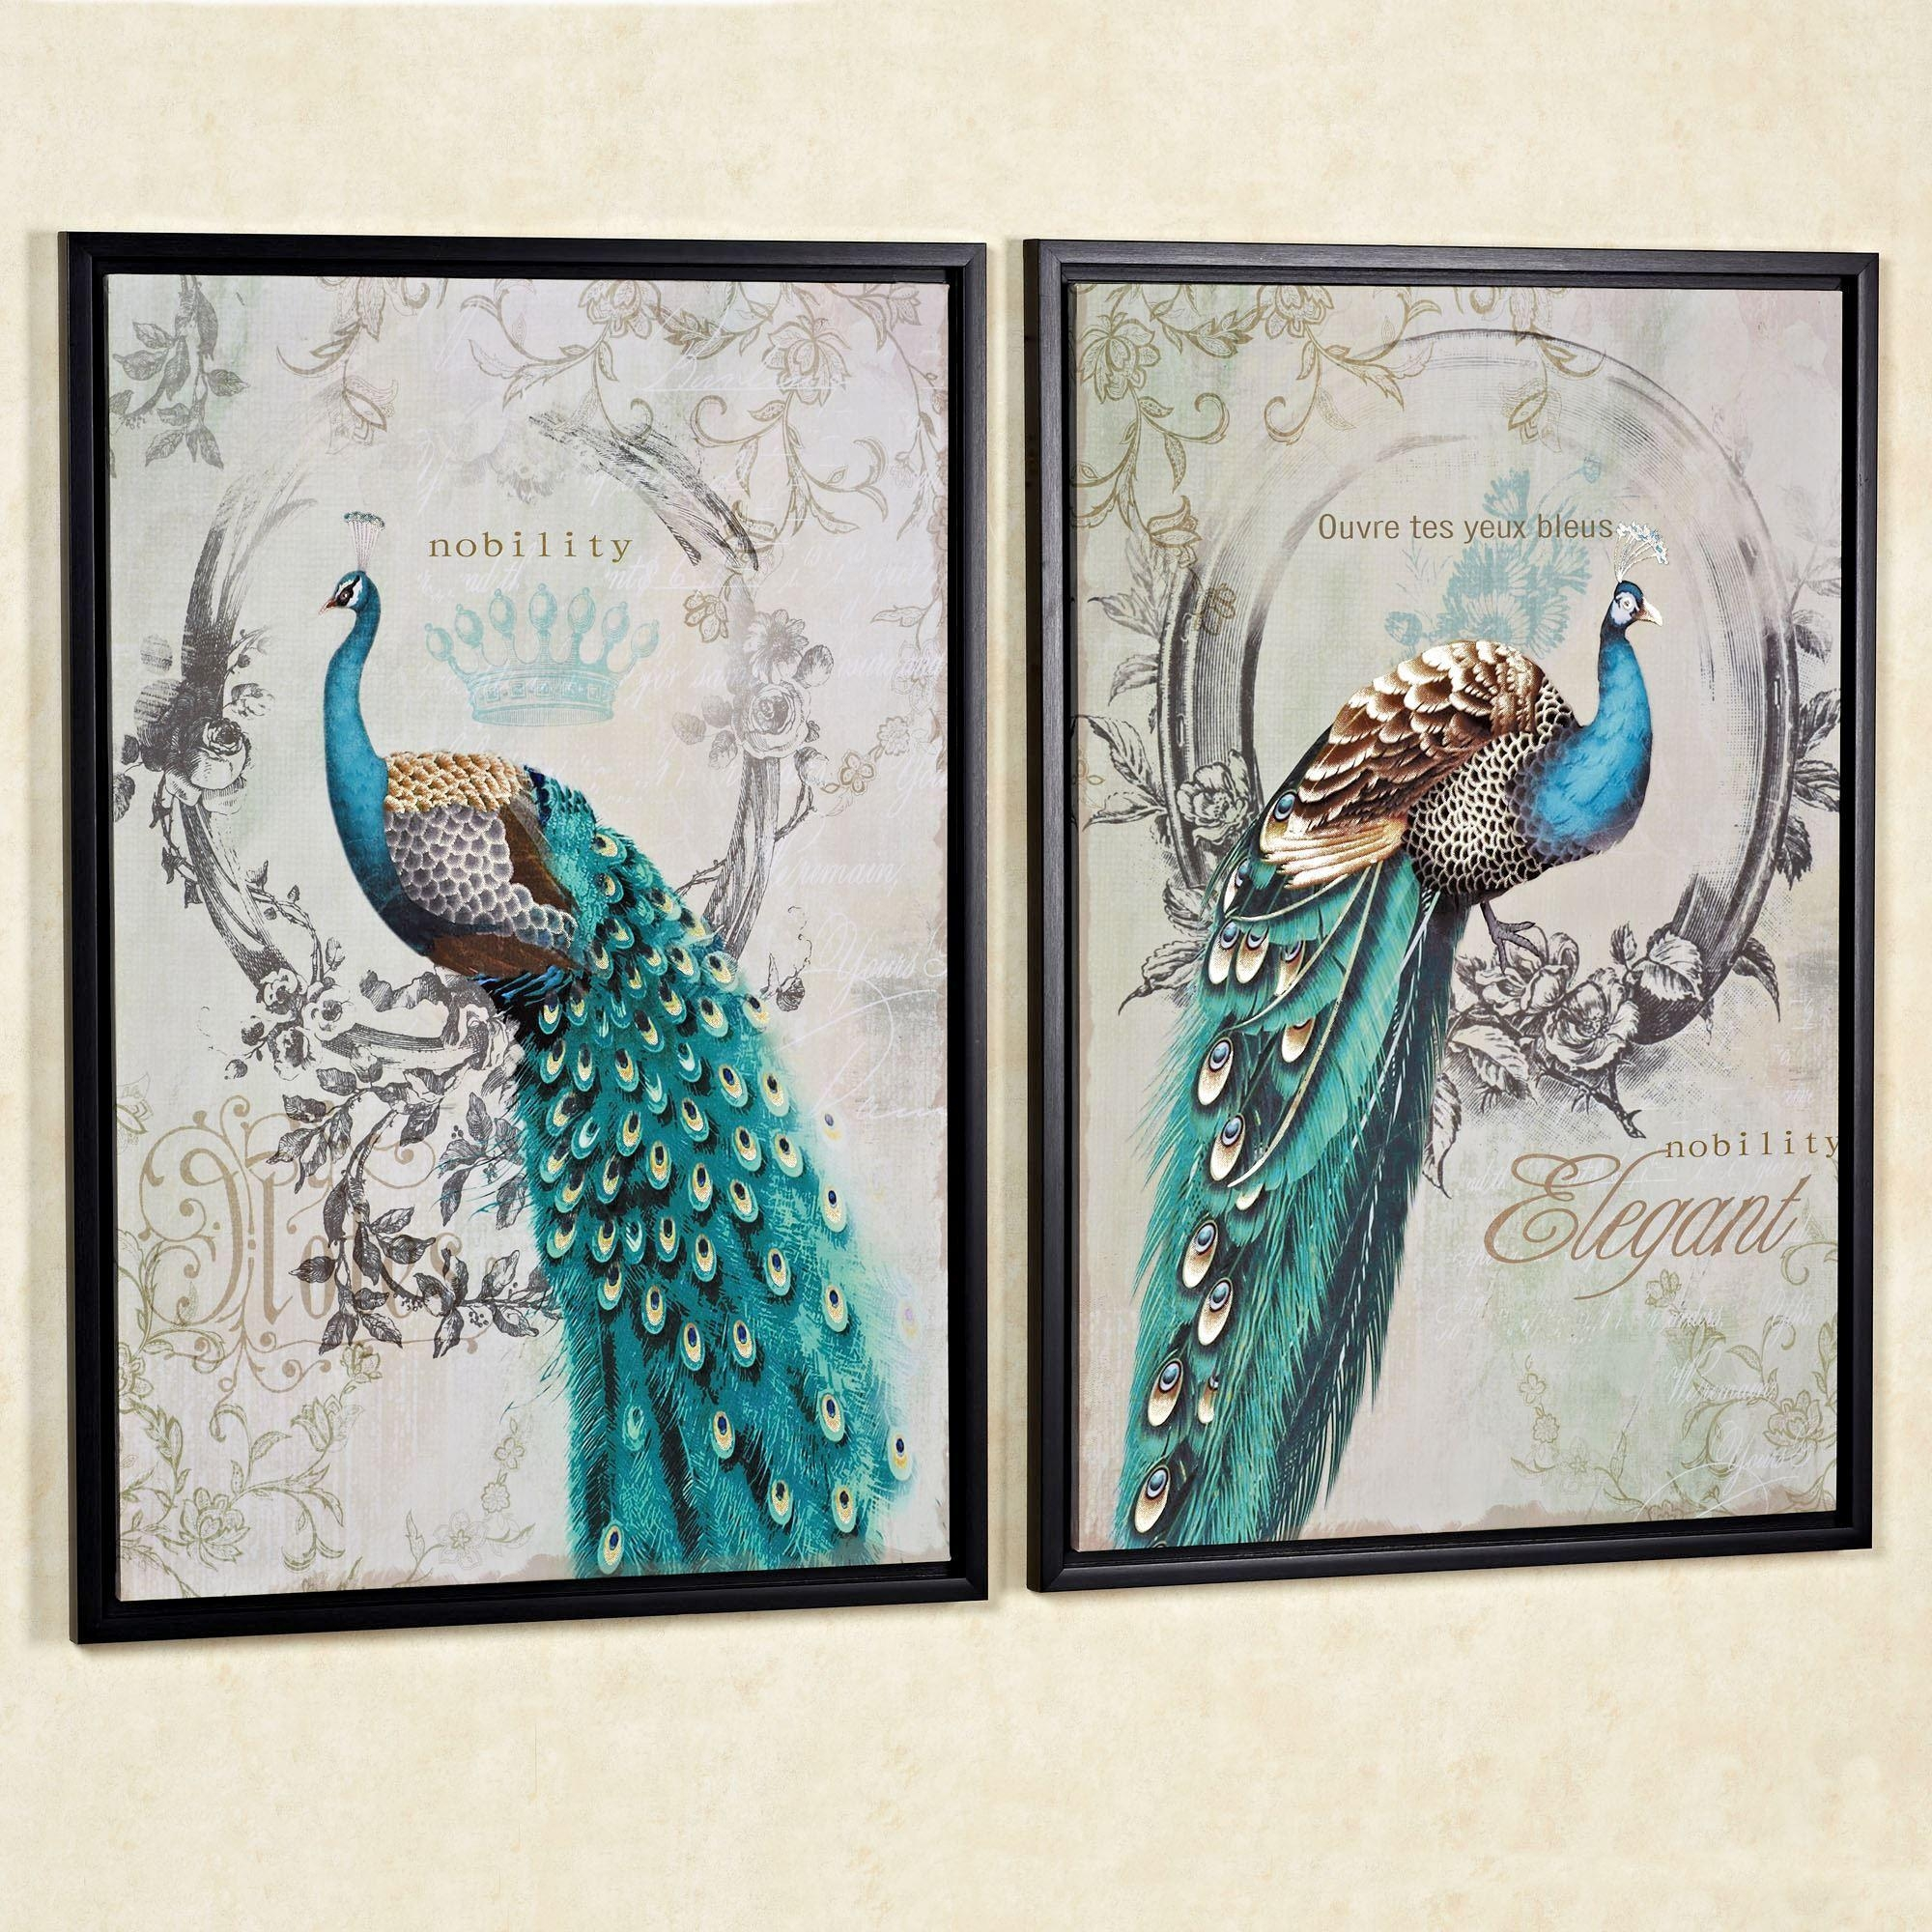 Metallic Decor Design Home Accents 20 Photos Metal Peacock Wall Art Wall Art Ideas